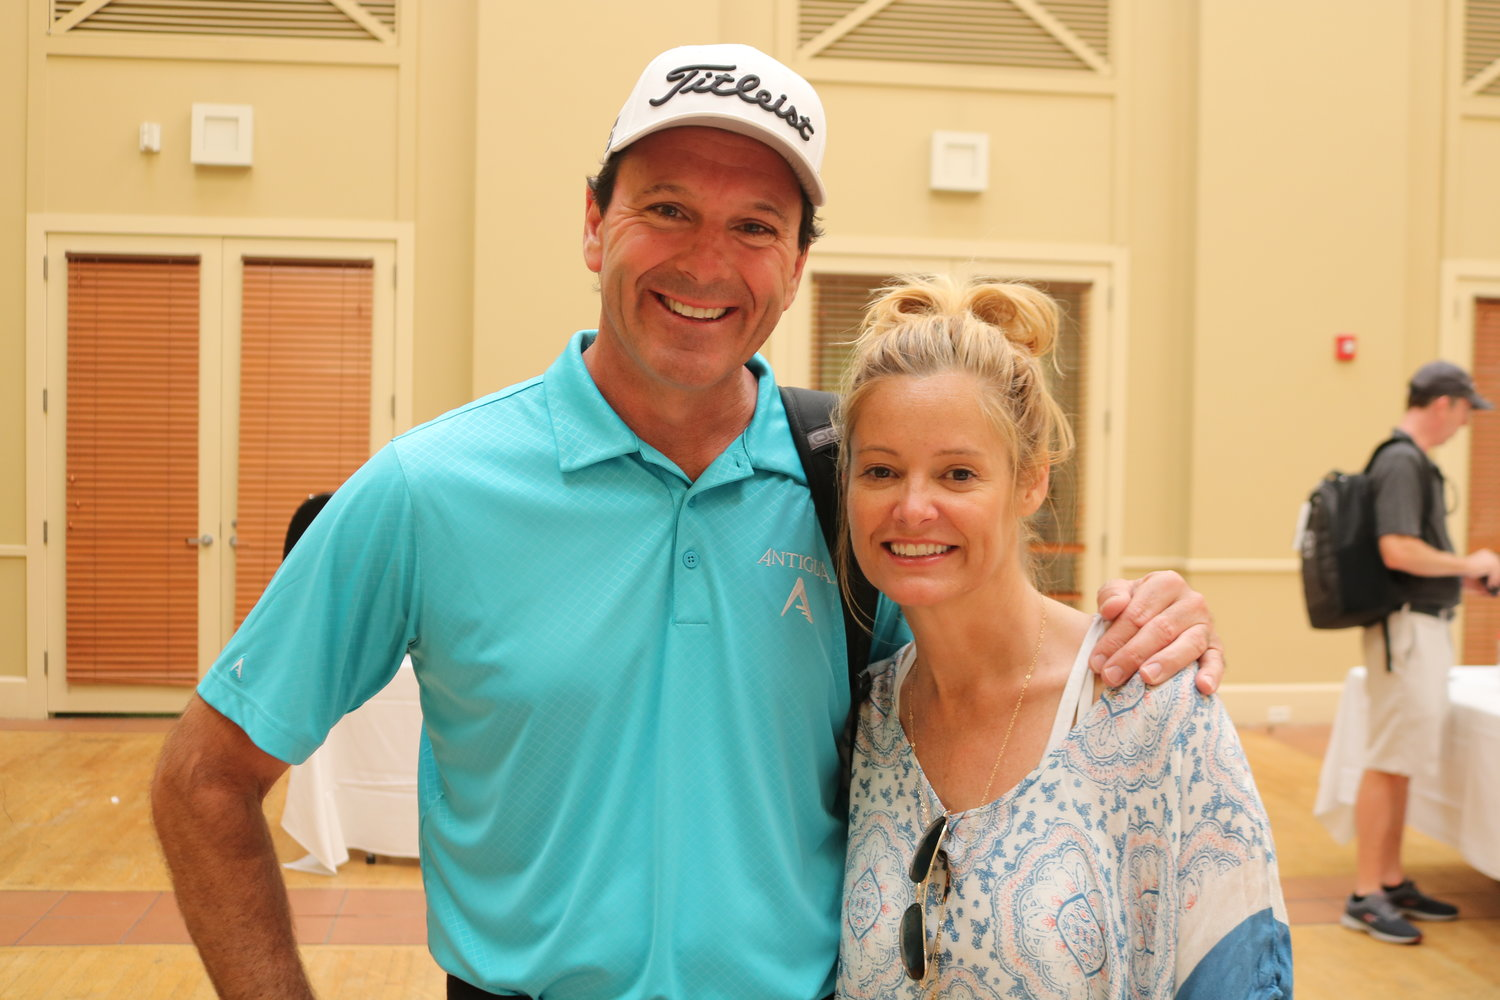 Len Mattiace and Tabitha Furyk at the golf tournament at Sawgrass Country Club